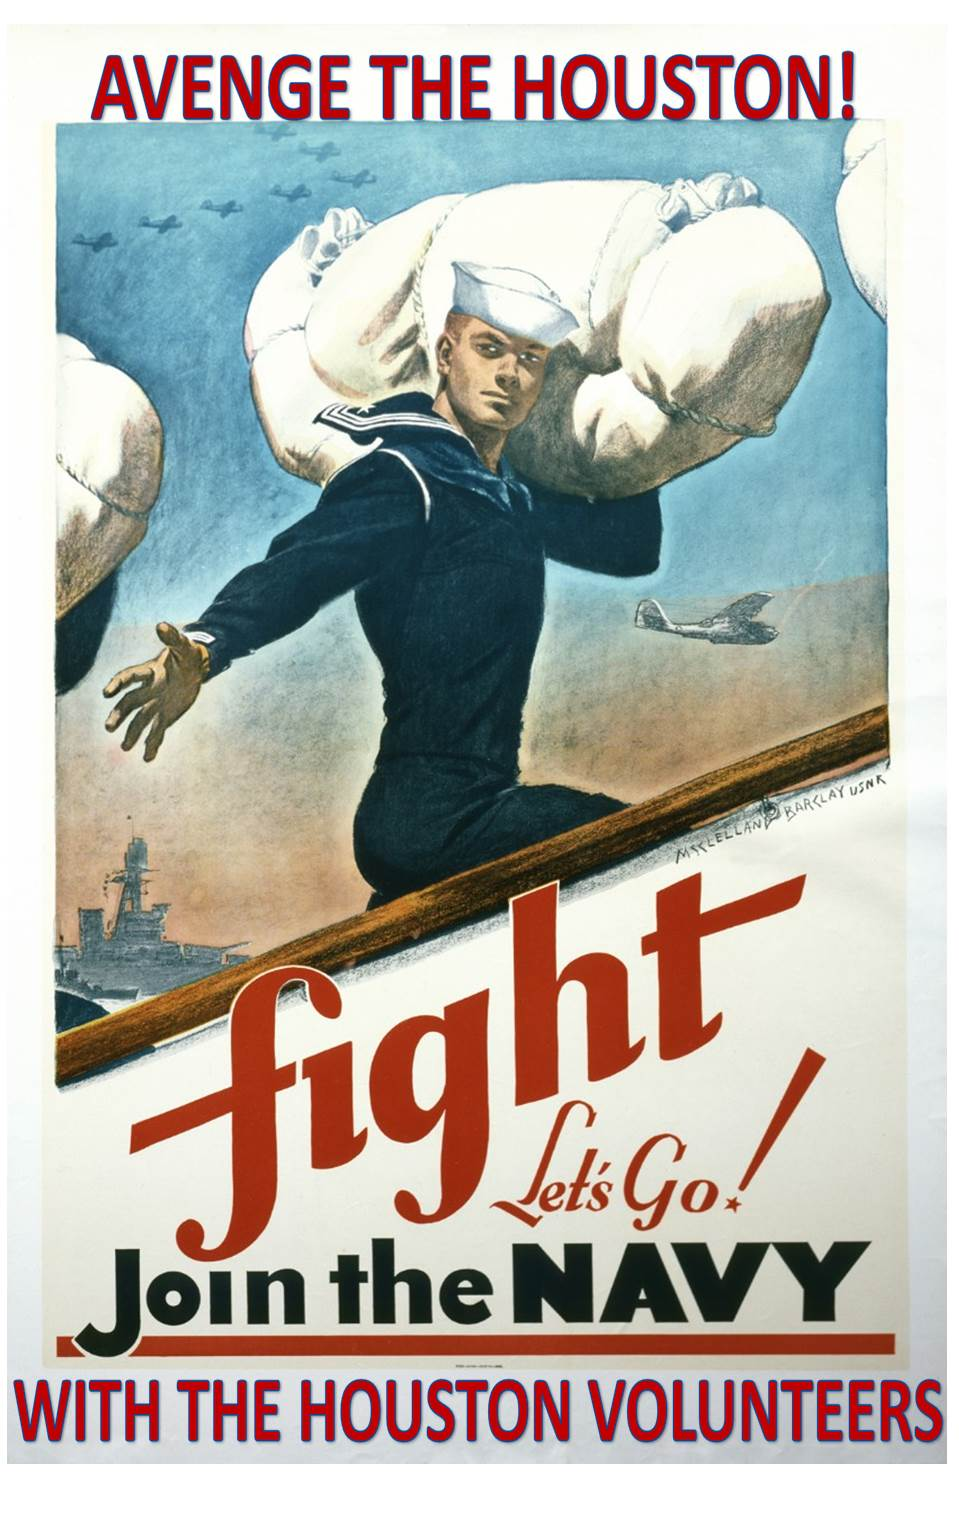 Houston Volunteers Recruiting Poster (Author Collection)